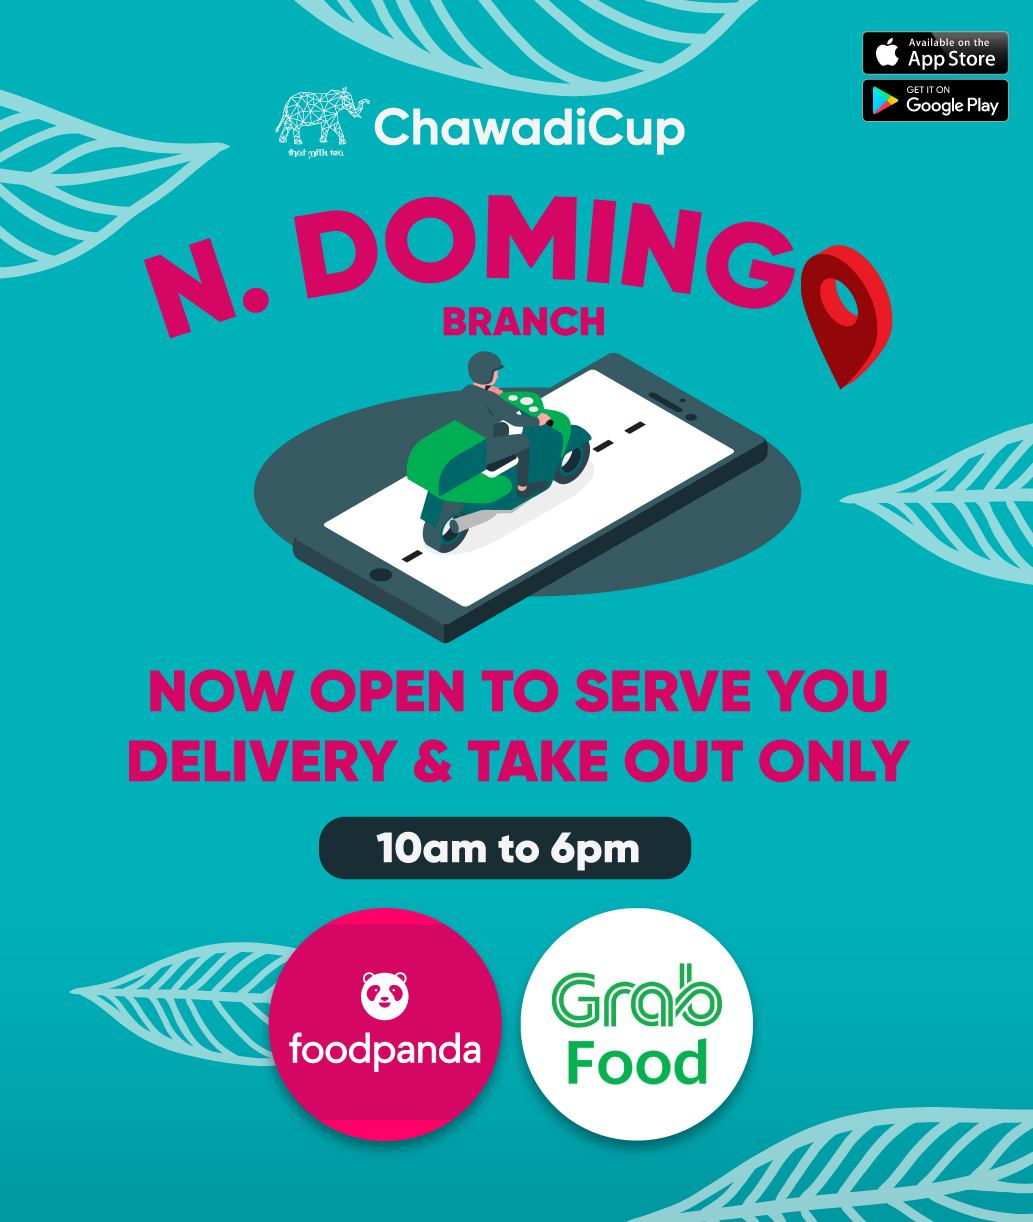 ChawdiCup's delivery and take-out announcement